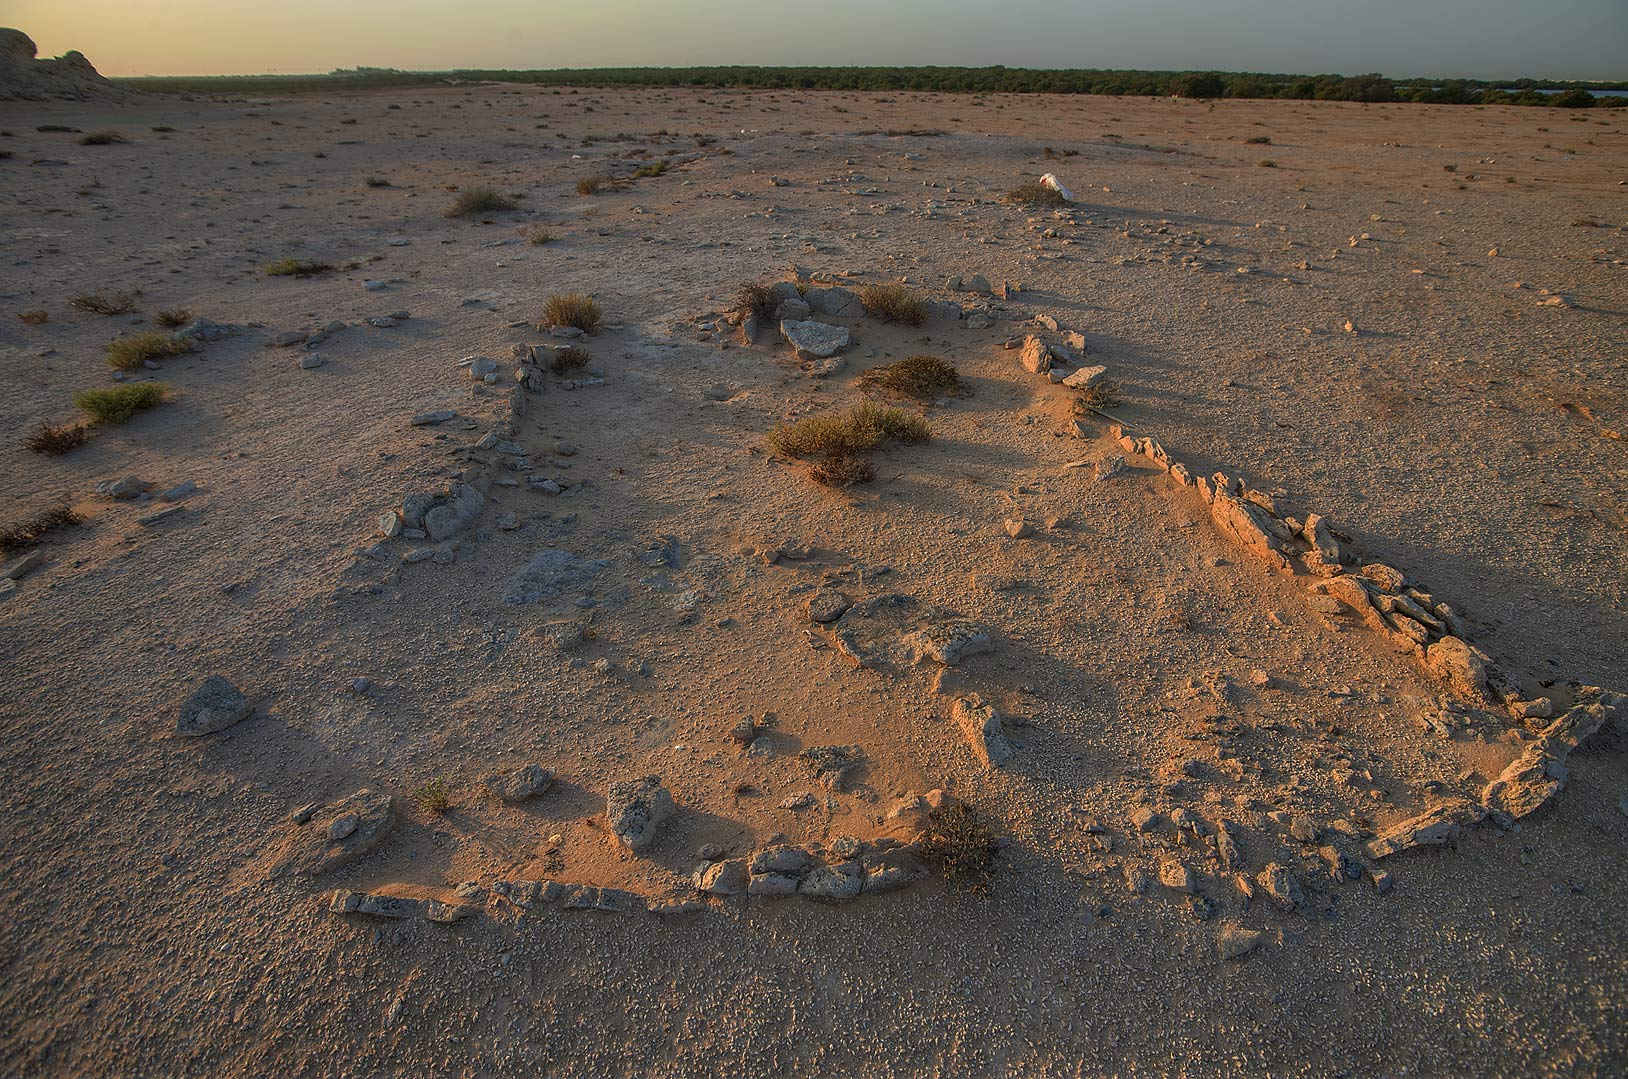 Remains of archeological excavations in Purple...Bin Ghanim) at sunrise. Al Khor, Qatar